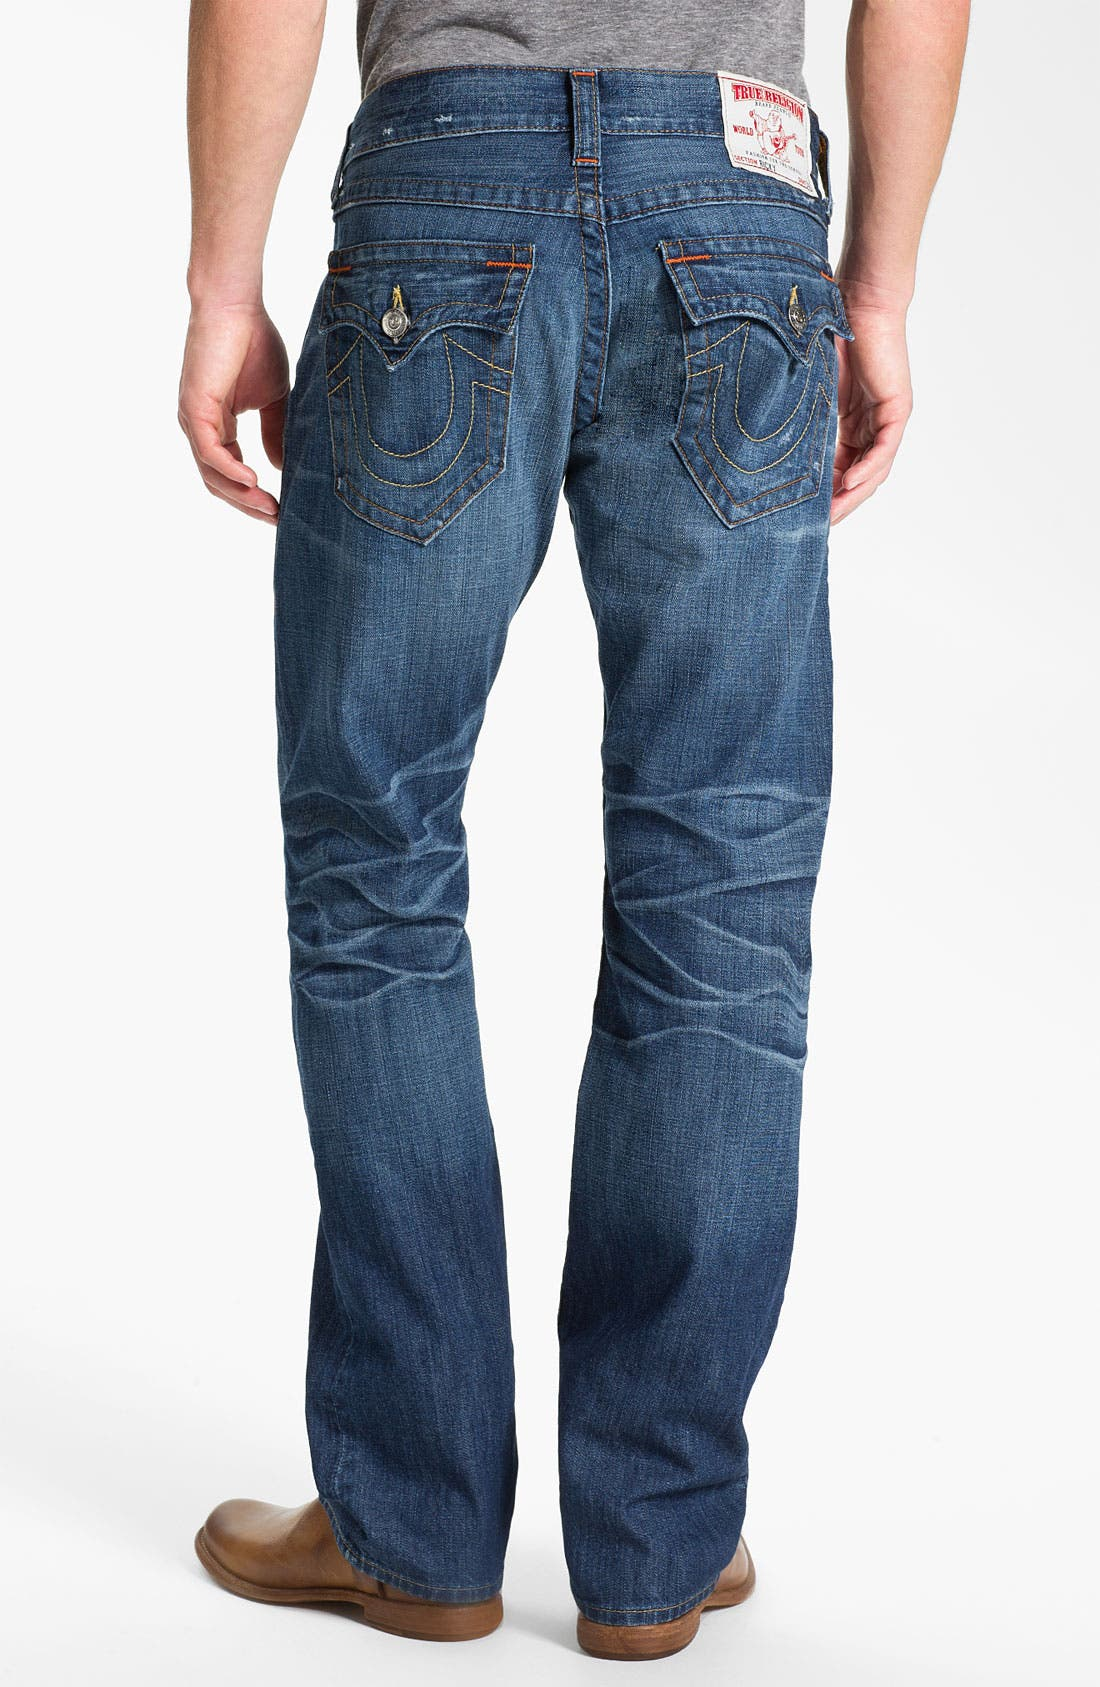 Main Image - True Religion Brand Jeans 'Ricky' Straight Leg Jeans (Pioneer)